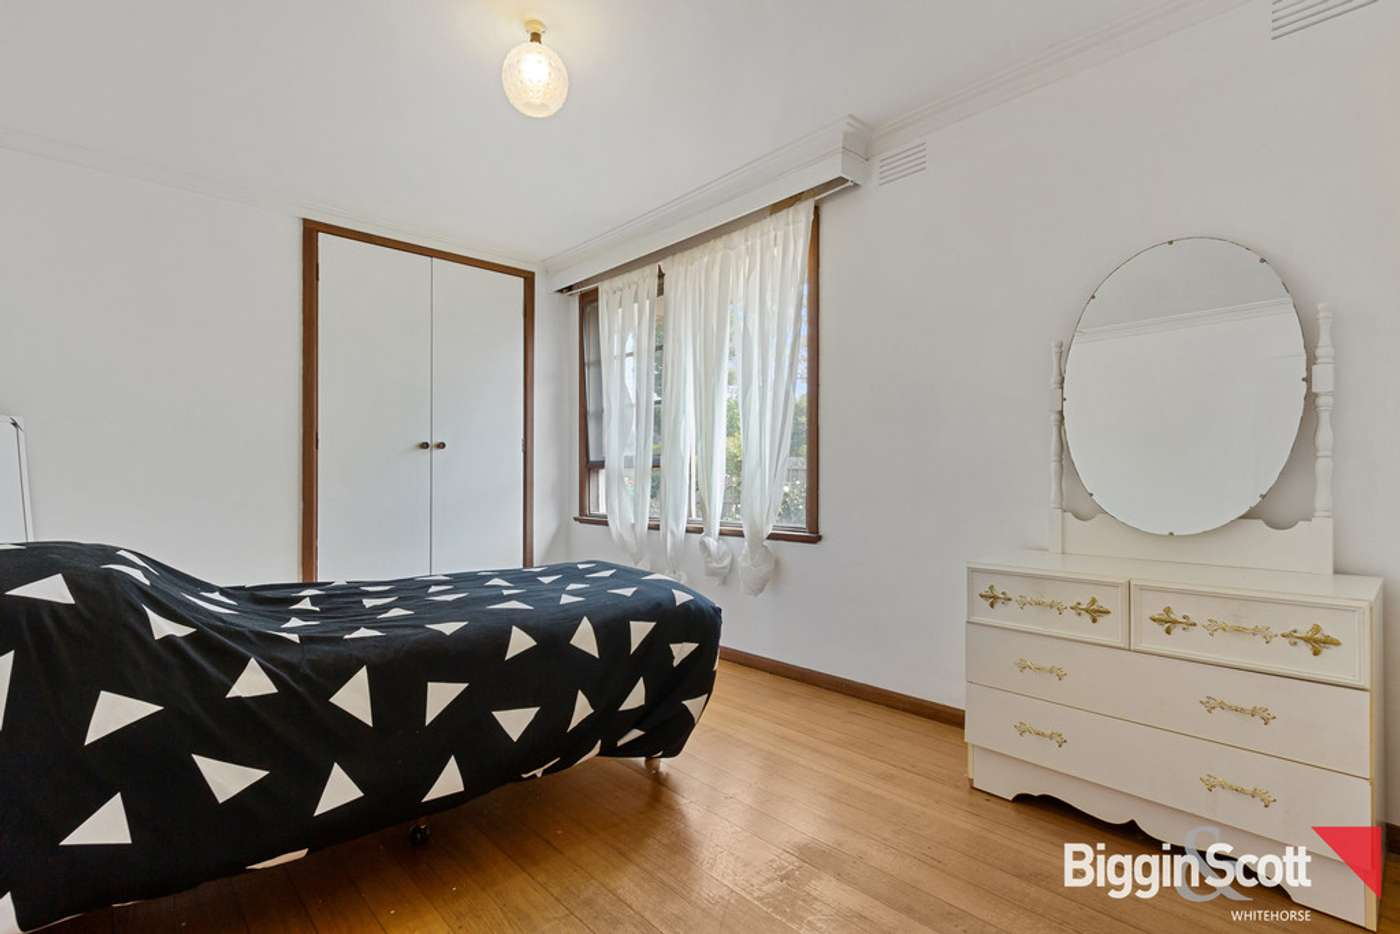 Sixth view of Homely house listing, 30 Blue Hills Avenue, Mount Waverley VIC 3149